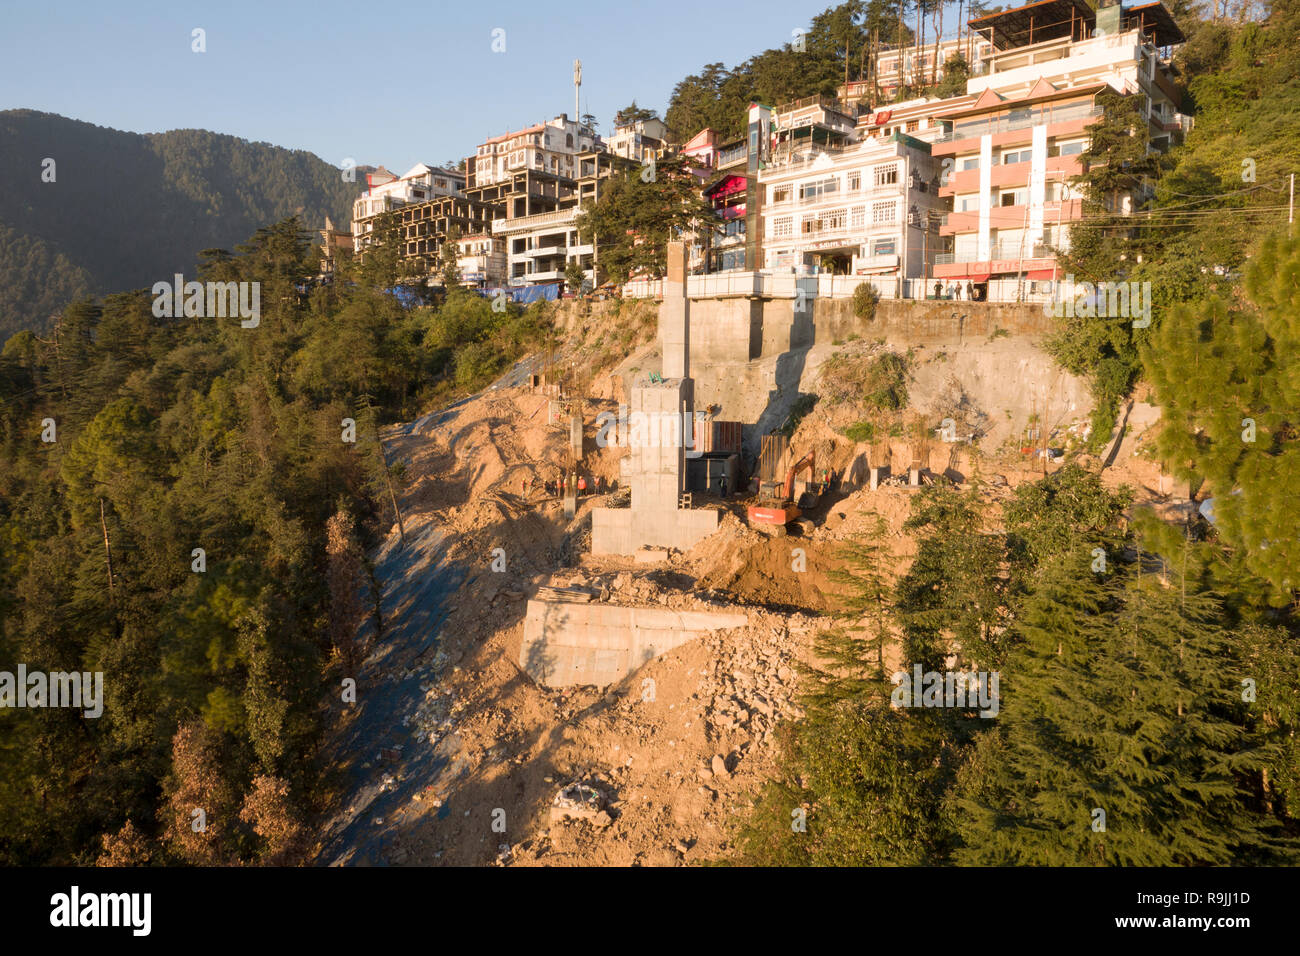 Construction of concrete pillar for Dharamshala to McLeod Ganj ropeway in Himachal Pradesh, India - Stock Image